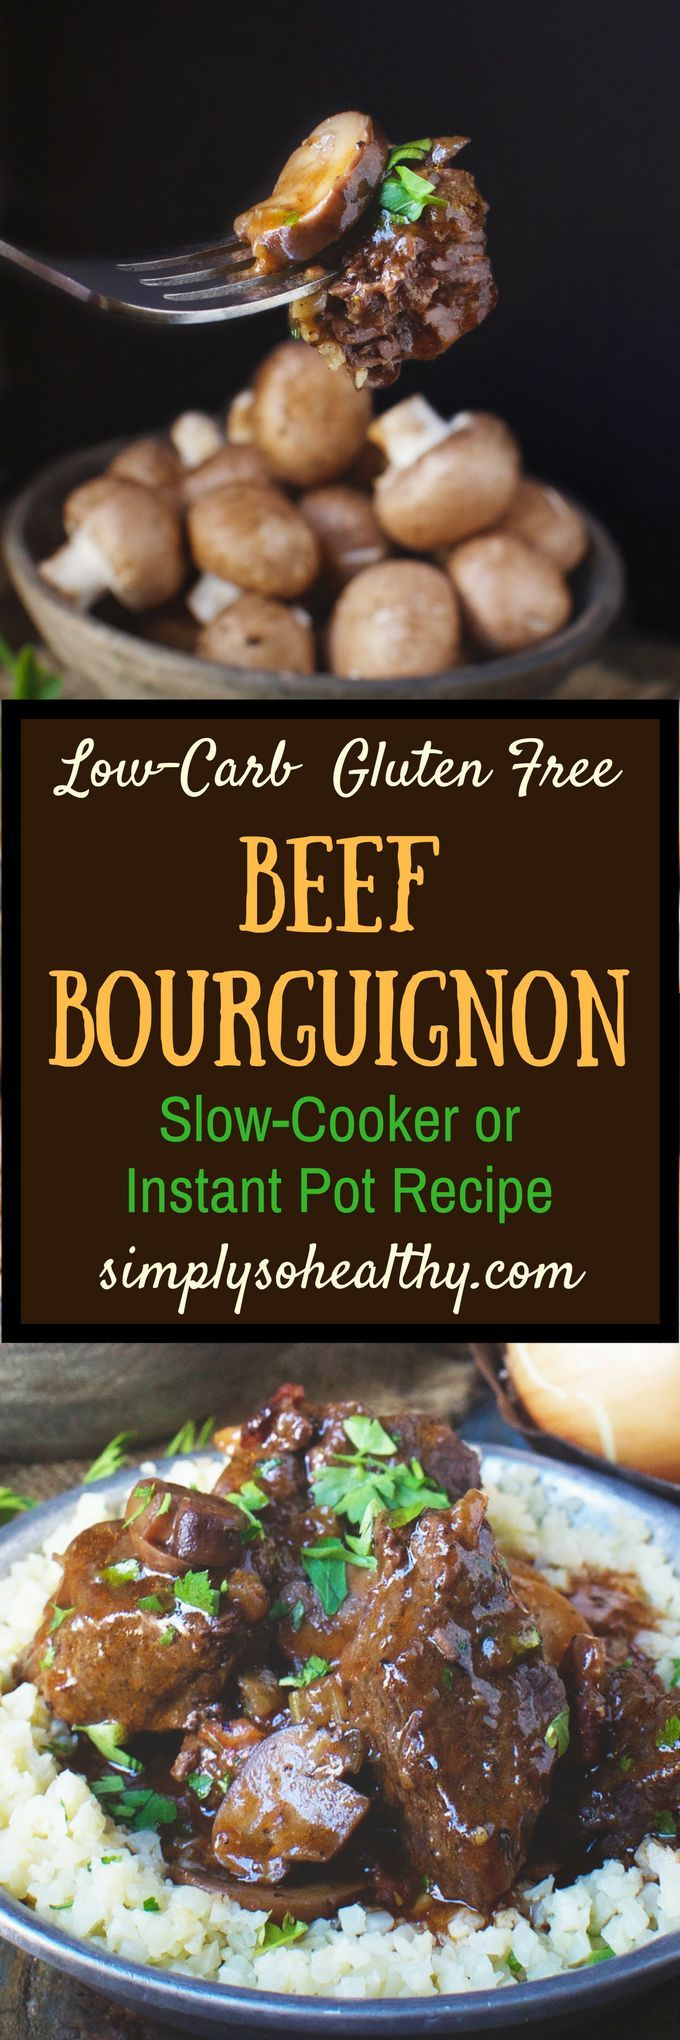 This recipe for Low-Carb Beef Bourguignon Stew can be made in an Instant Pot or a slow cooker. I've altered this traditional French stew recipe so it can be part of a low-carb, keto, Atkins, diabetic, Paleo, gluten-free, grain-free, or Banting Diet.#lowcarb #keto #instantpot #beefstew